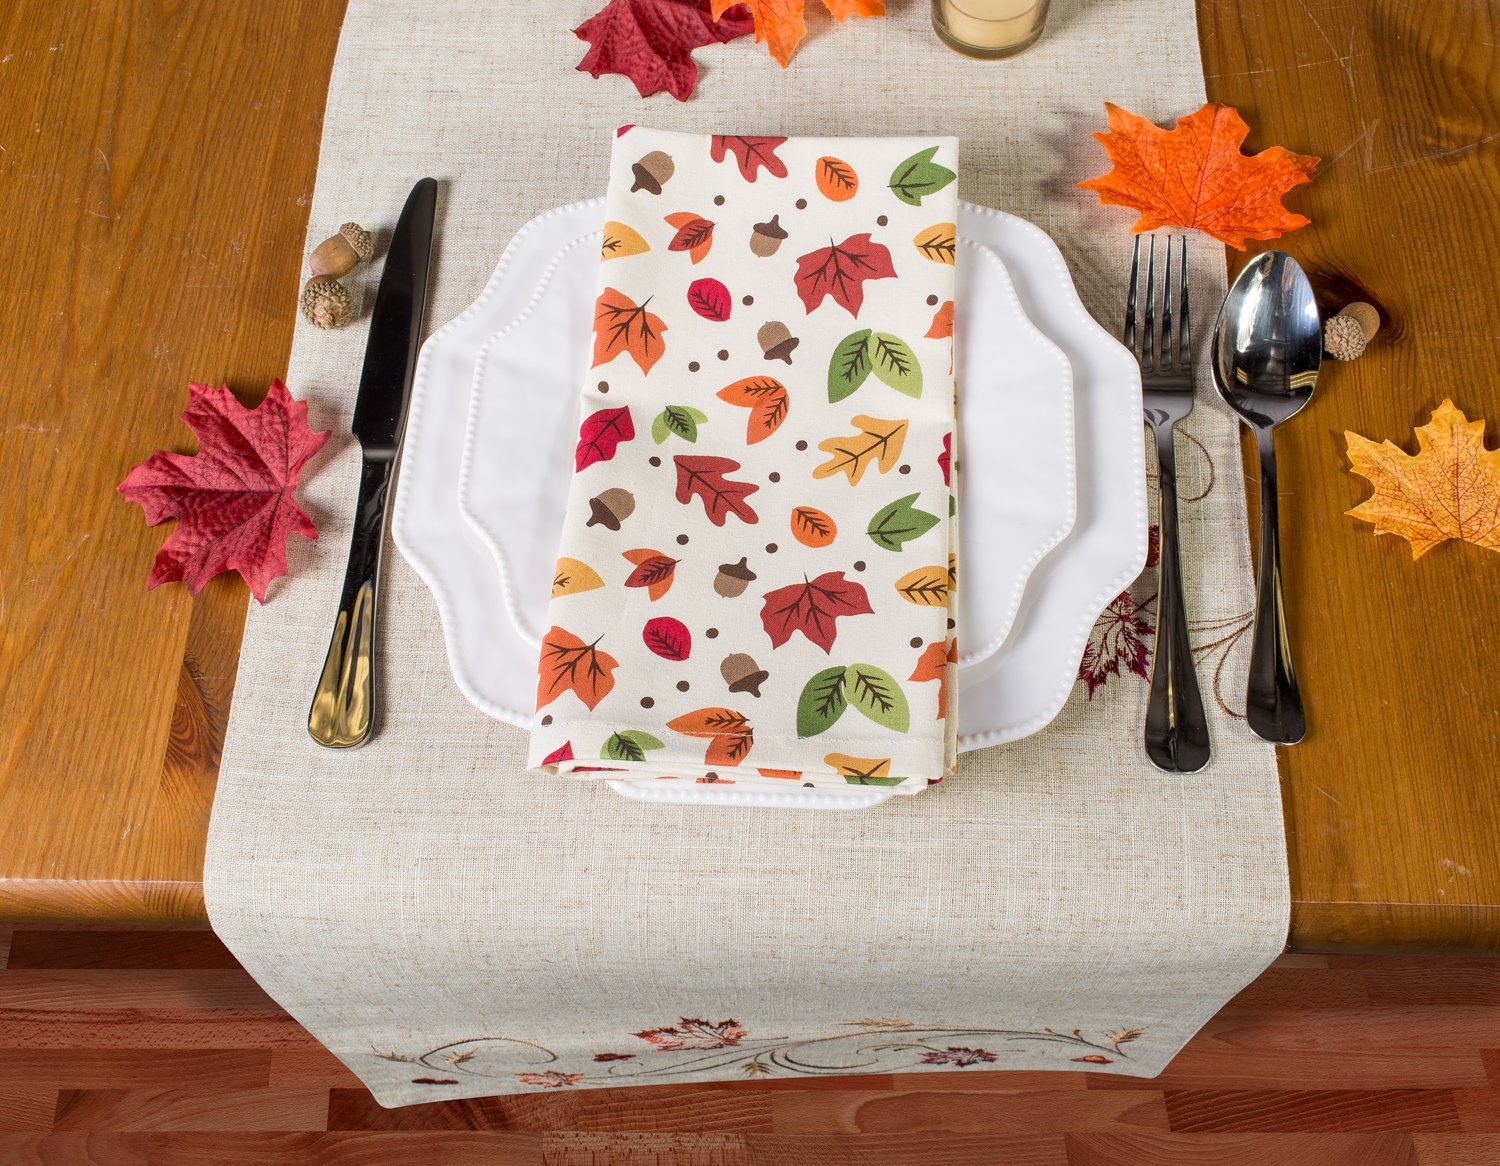 Friendsgiving and Fall Acorns Dinner Parties Set DII CAMZ11227 Oversized Embroidered Cotton Napkin Perfect for Thanksgiving